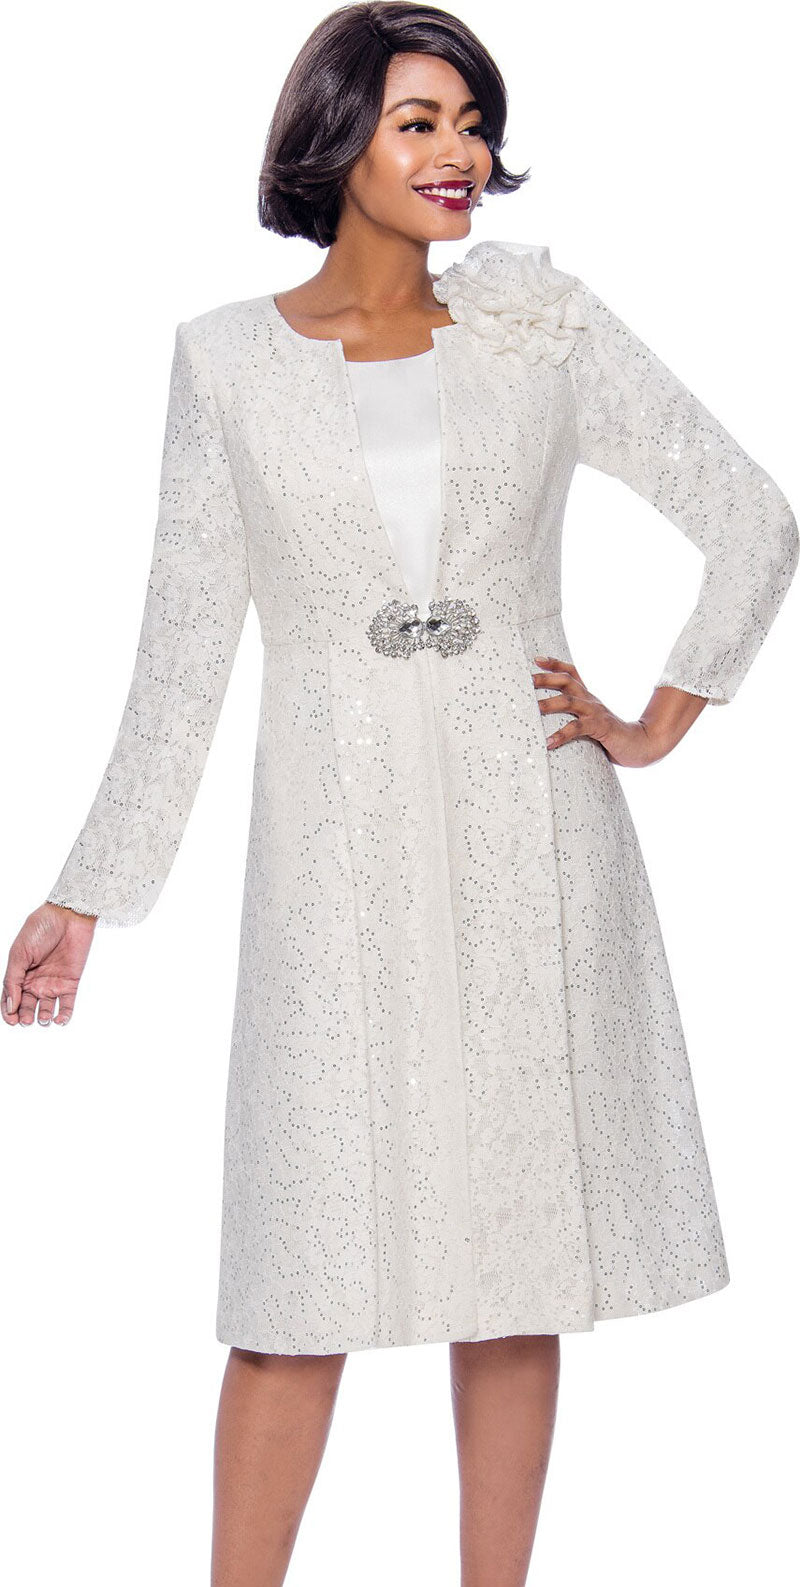 Susanna Dress 3948-White - Church Suits For Less